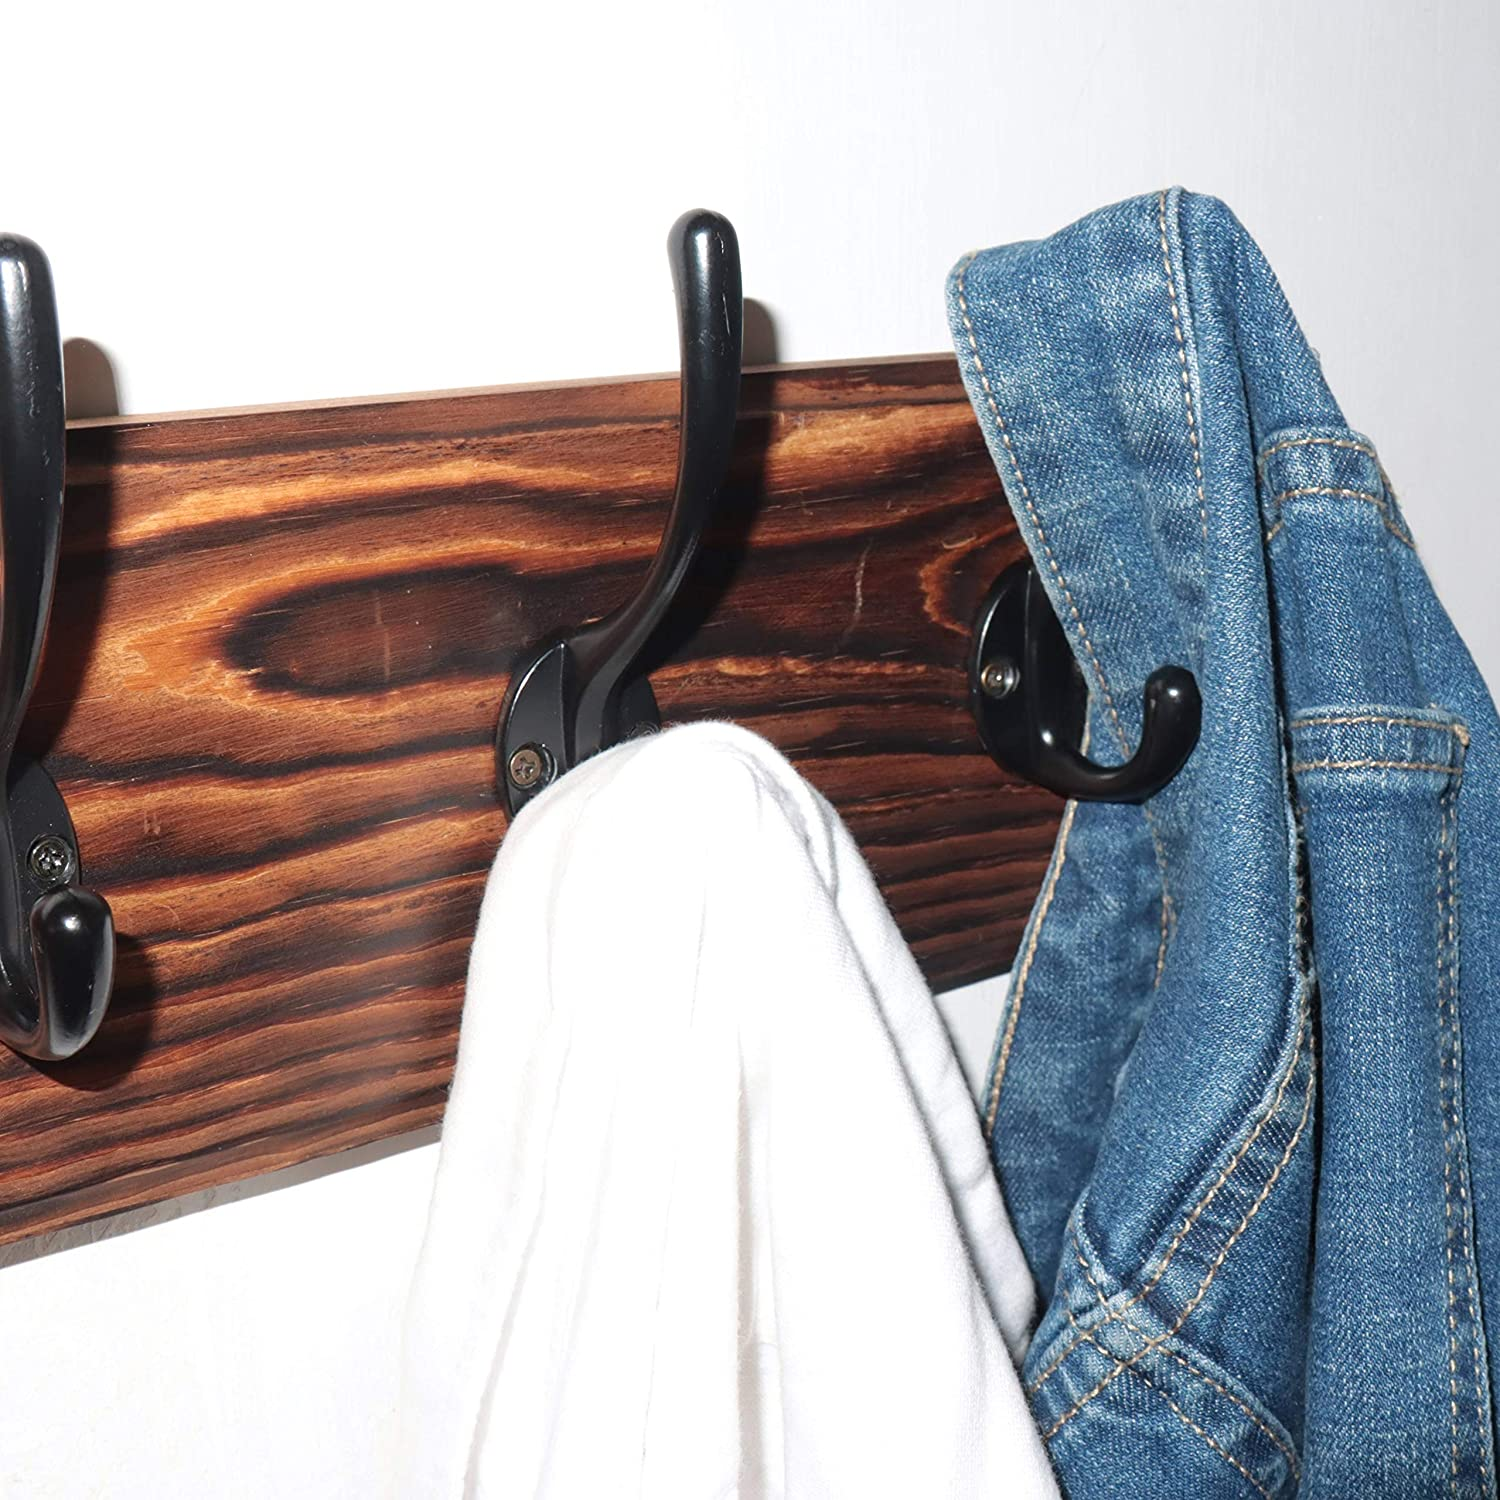 Black Heavy Duty Wooden Wall Coat Hanger for Clothes Hat Jacket Clothing Dseap Coat Rack Wall Mounted with 5 Coat Hooks